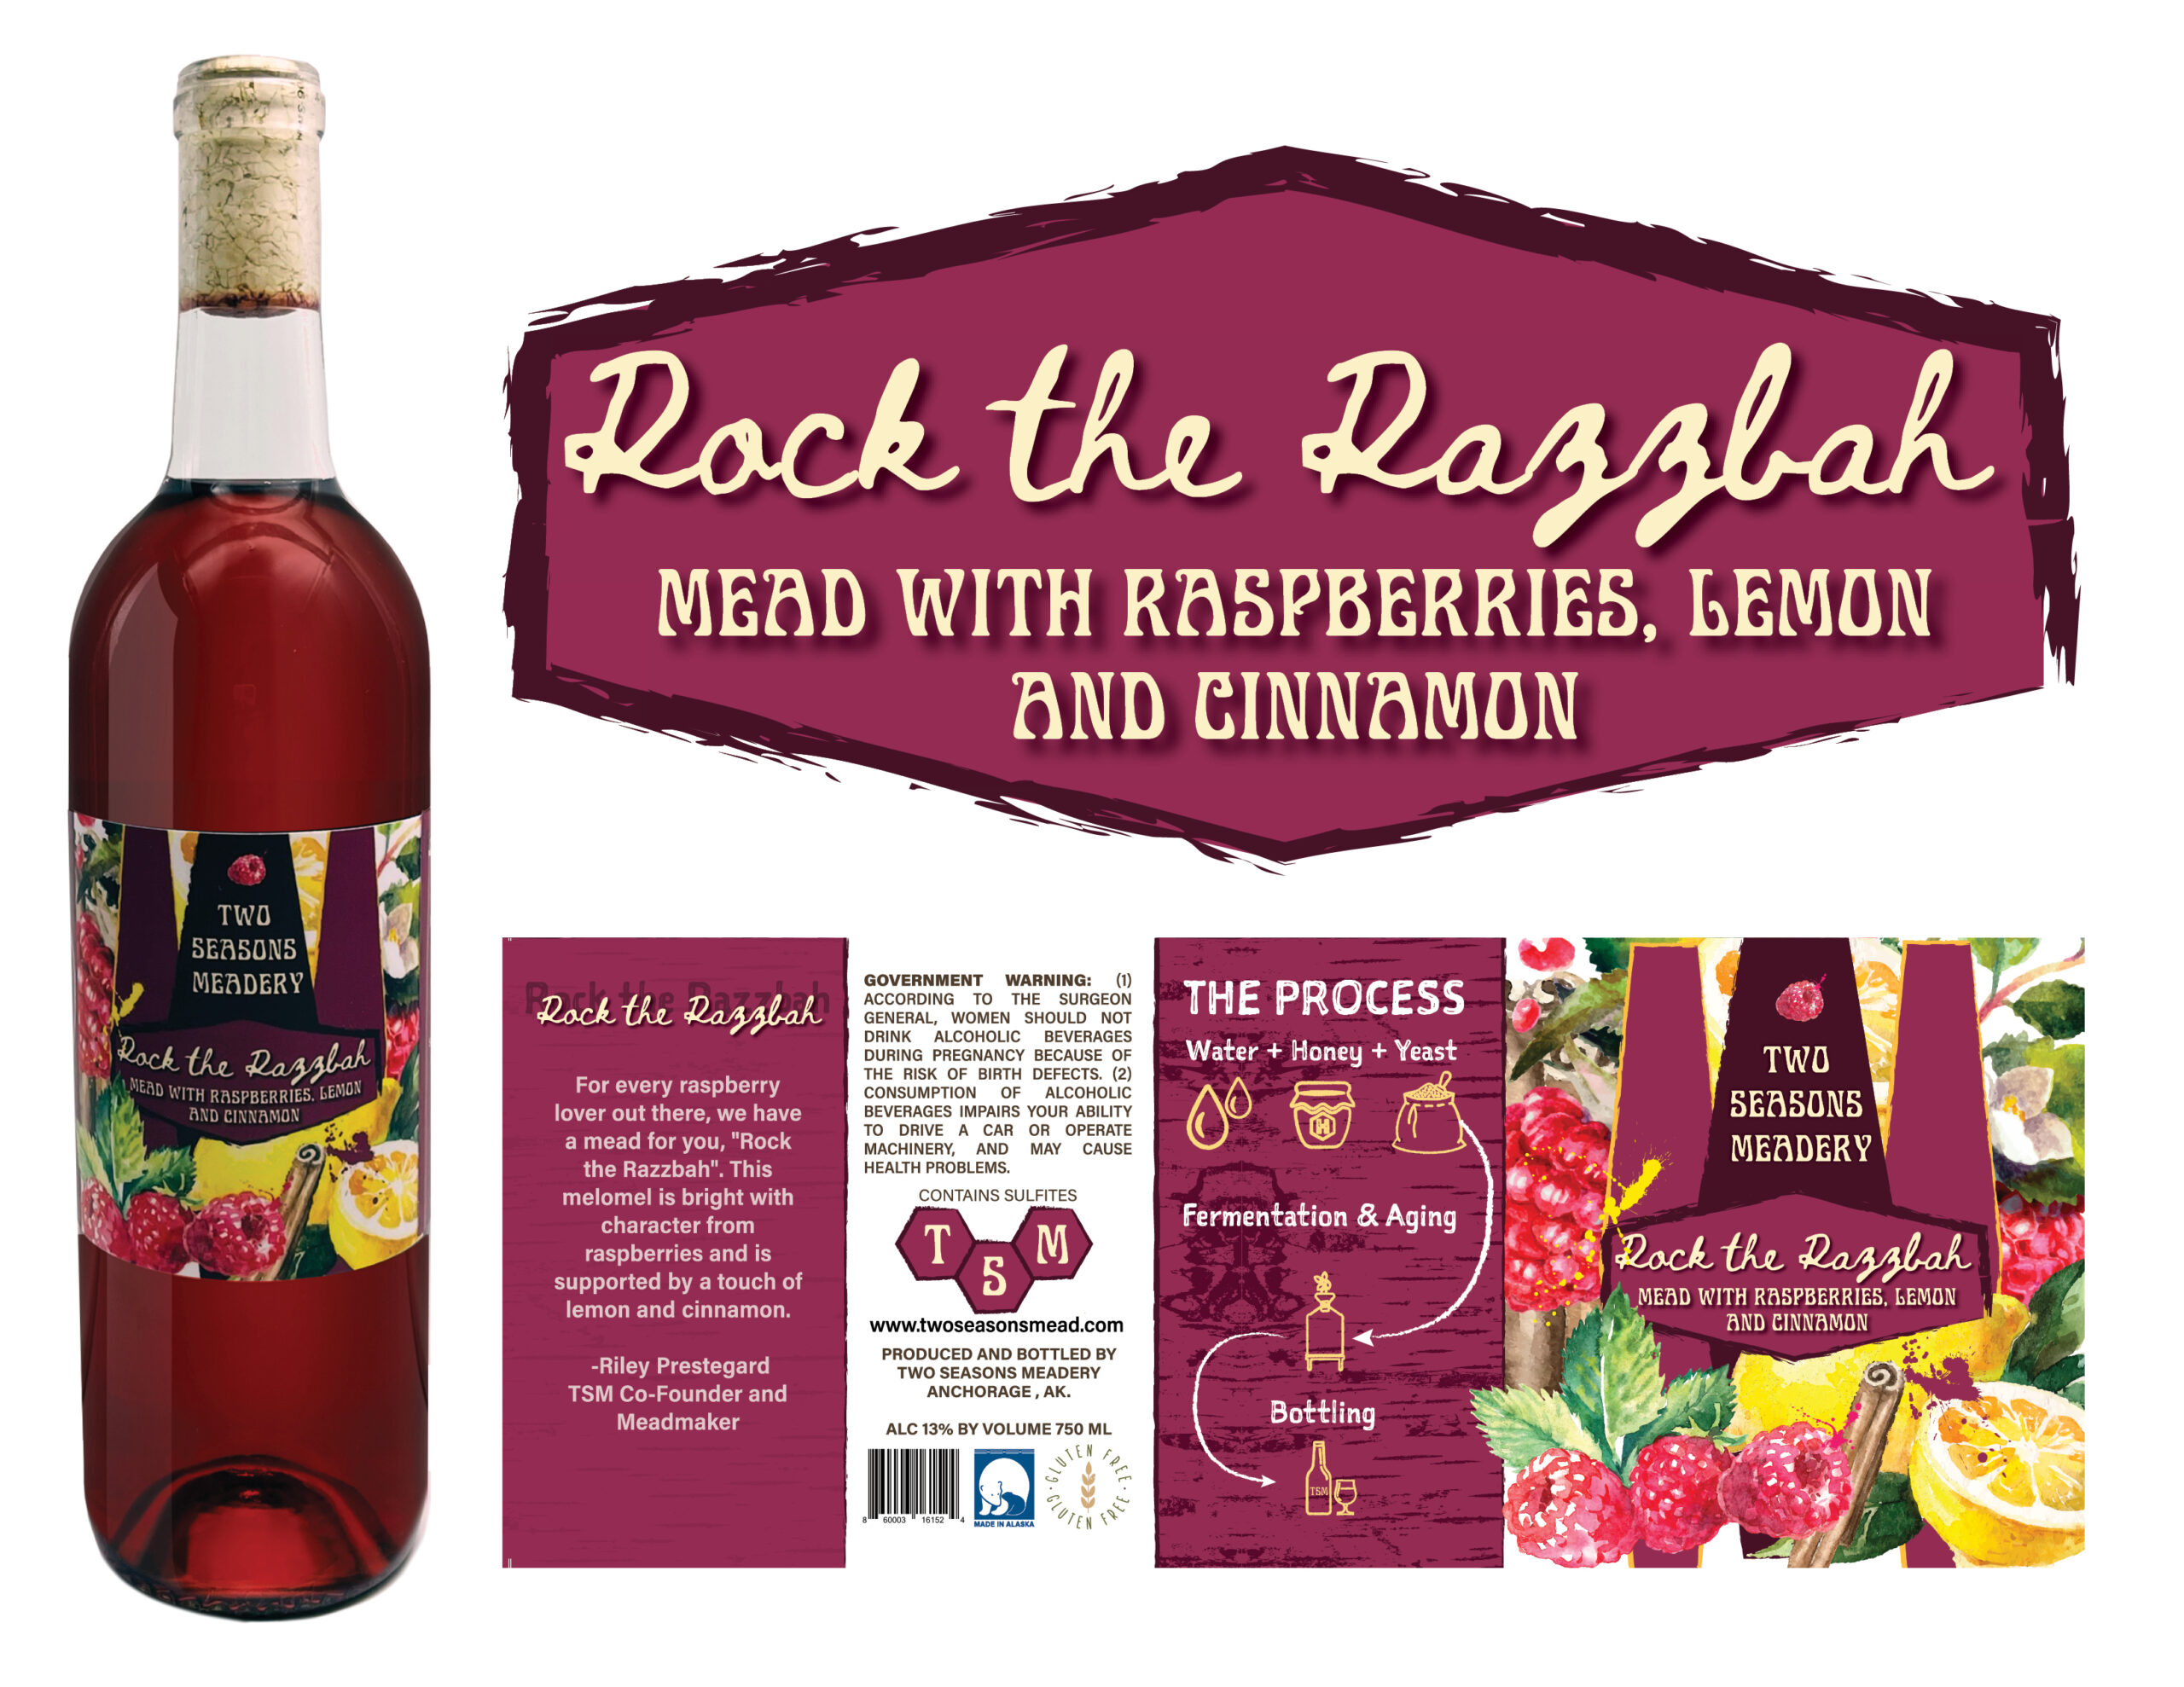 Two Season's Meadery Rock the Razzbah